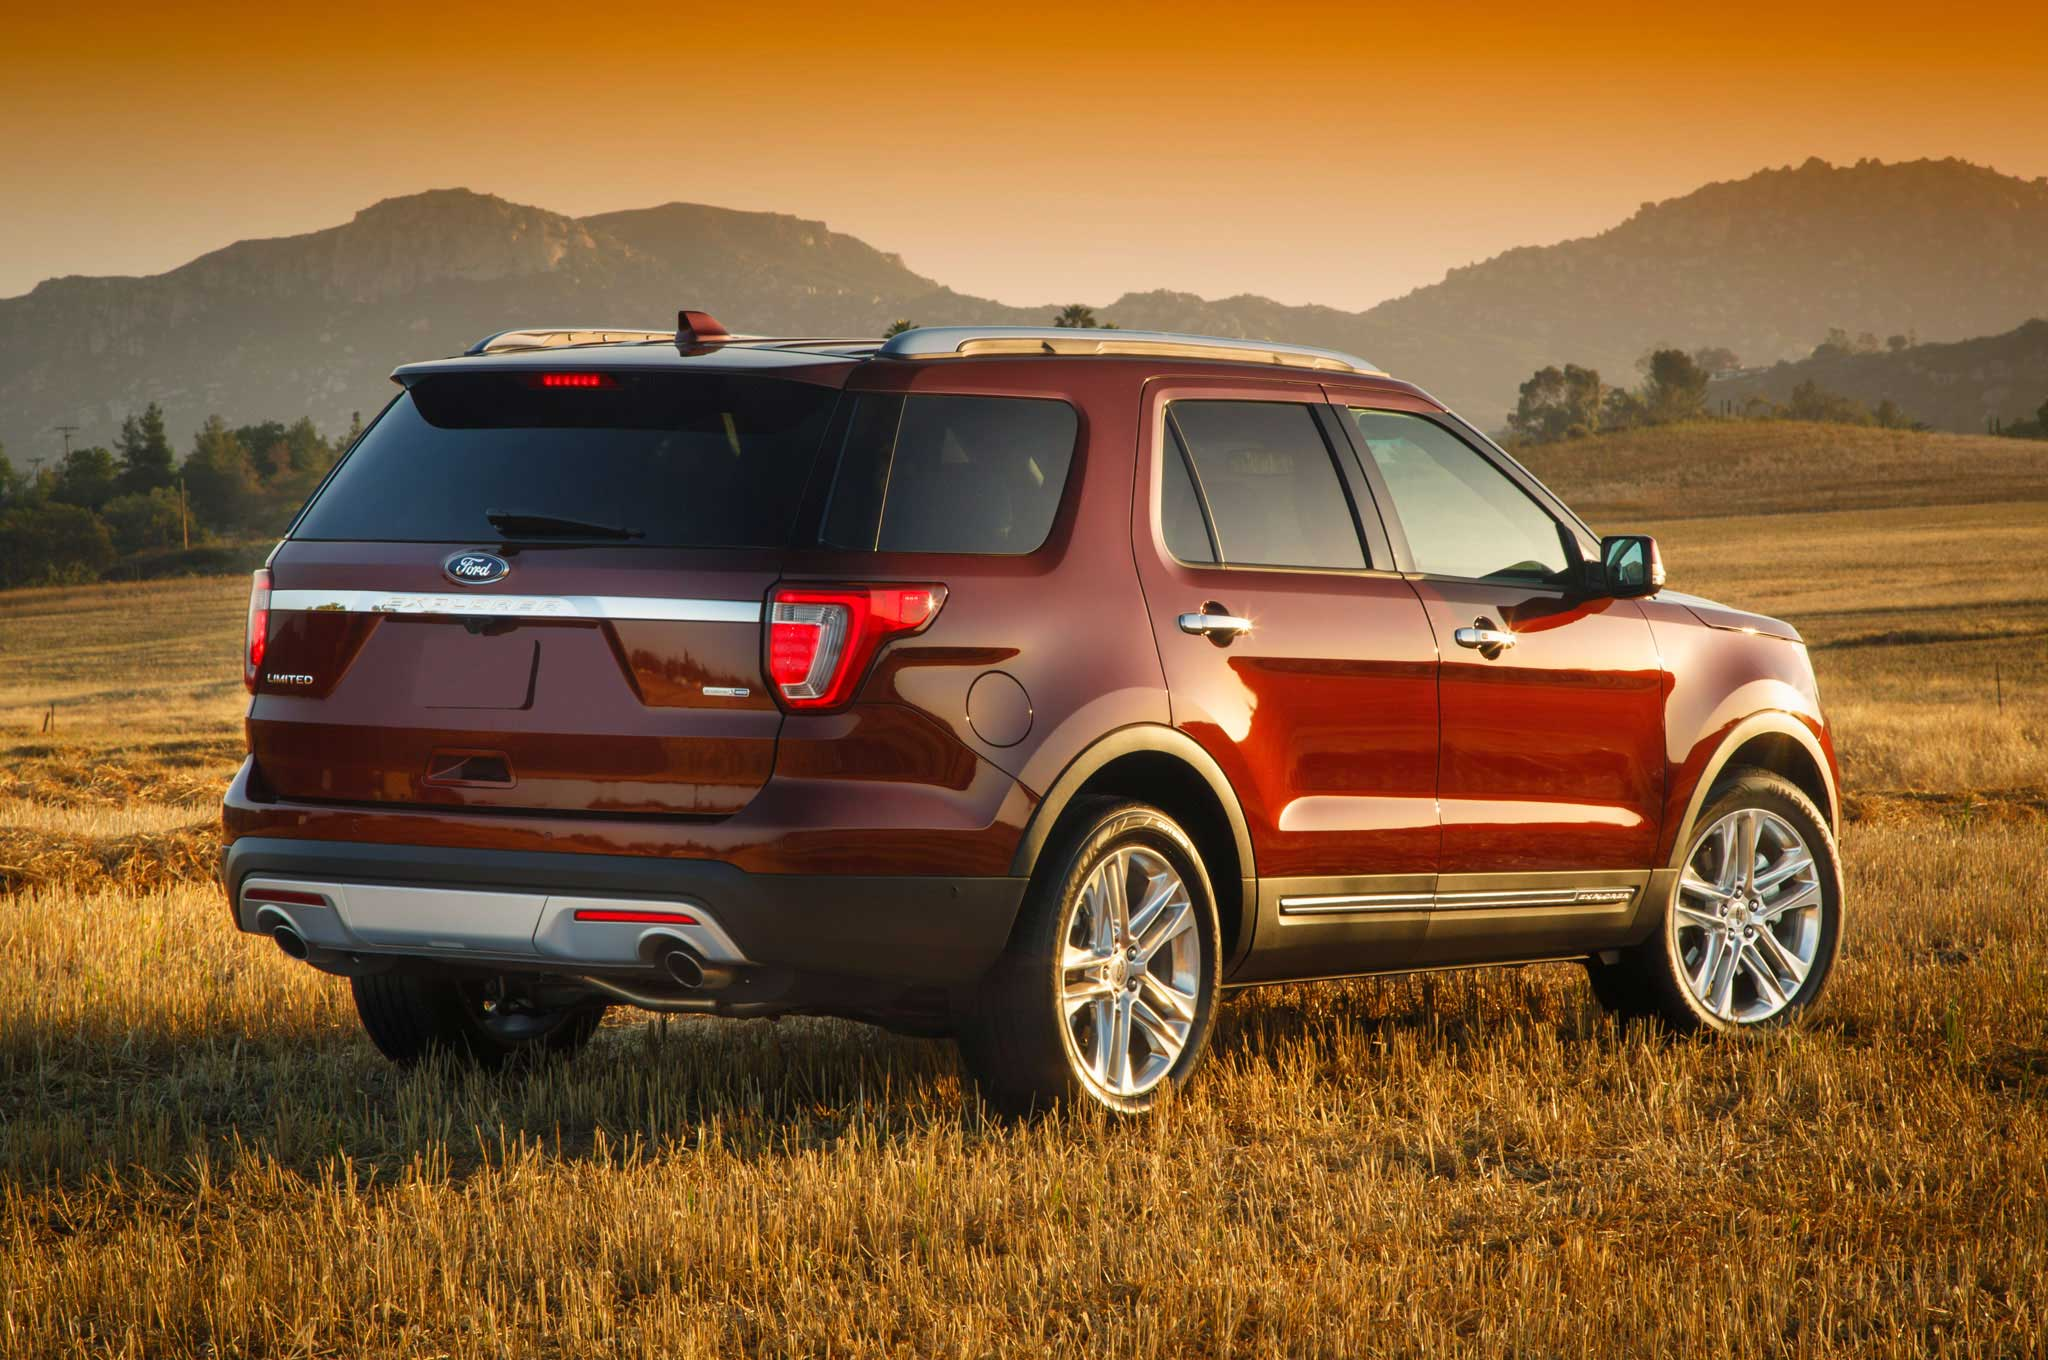 2016 ford explorer review lowrider